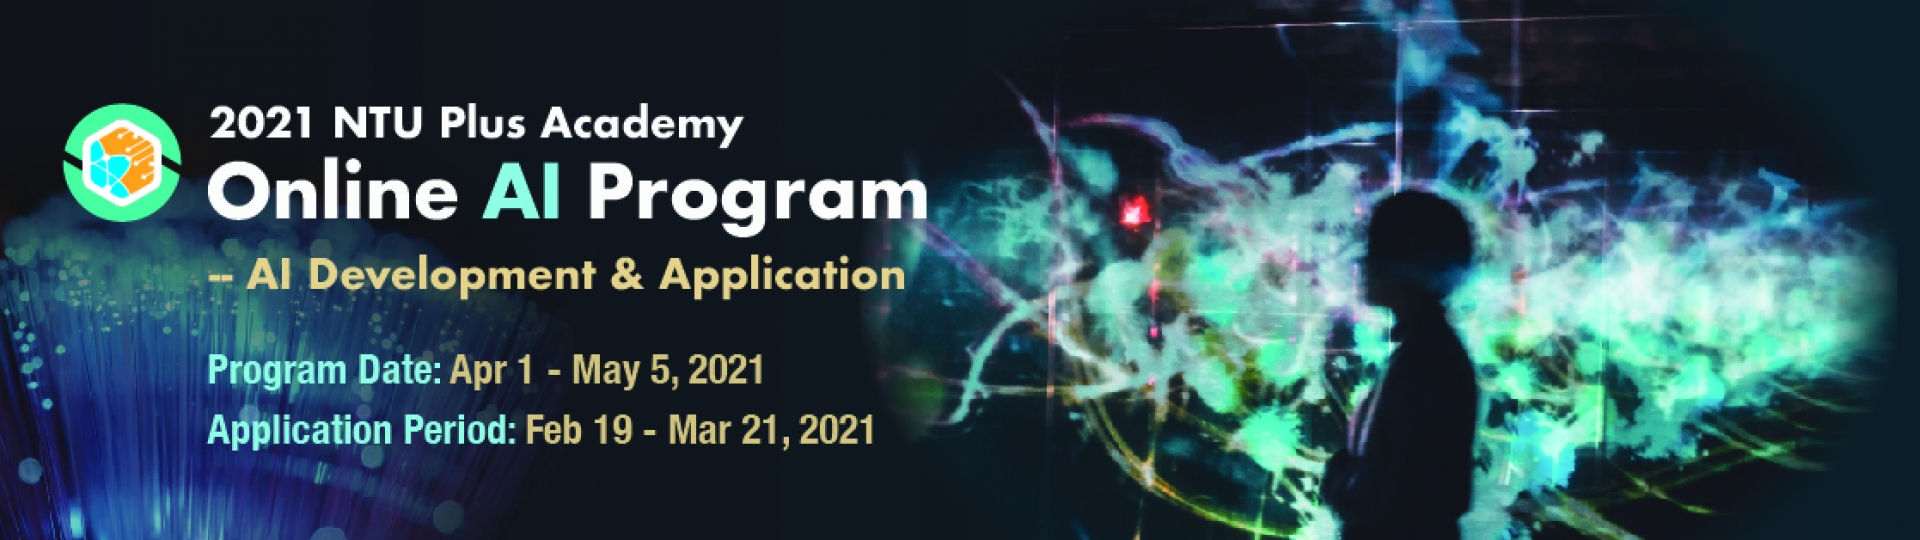 AI Development & Application Online Program